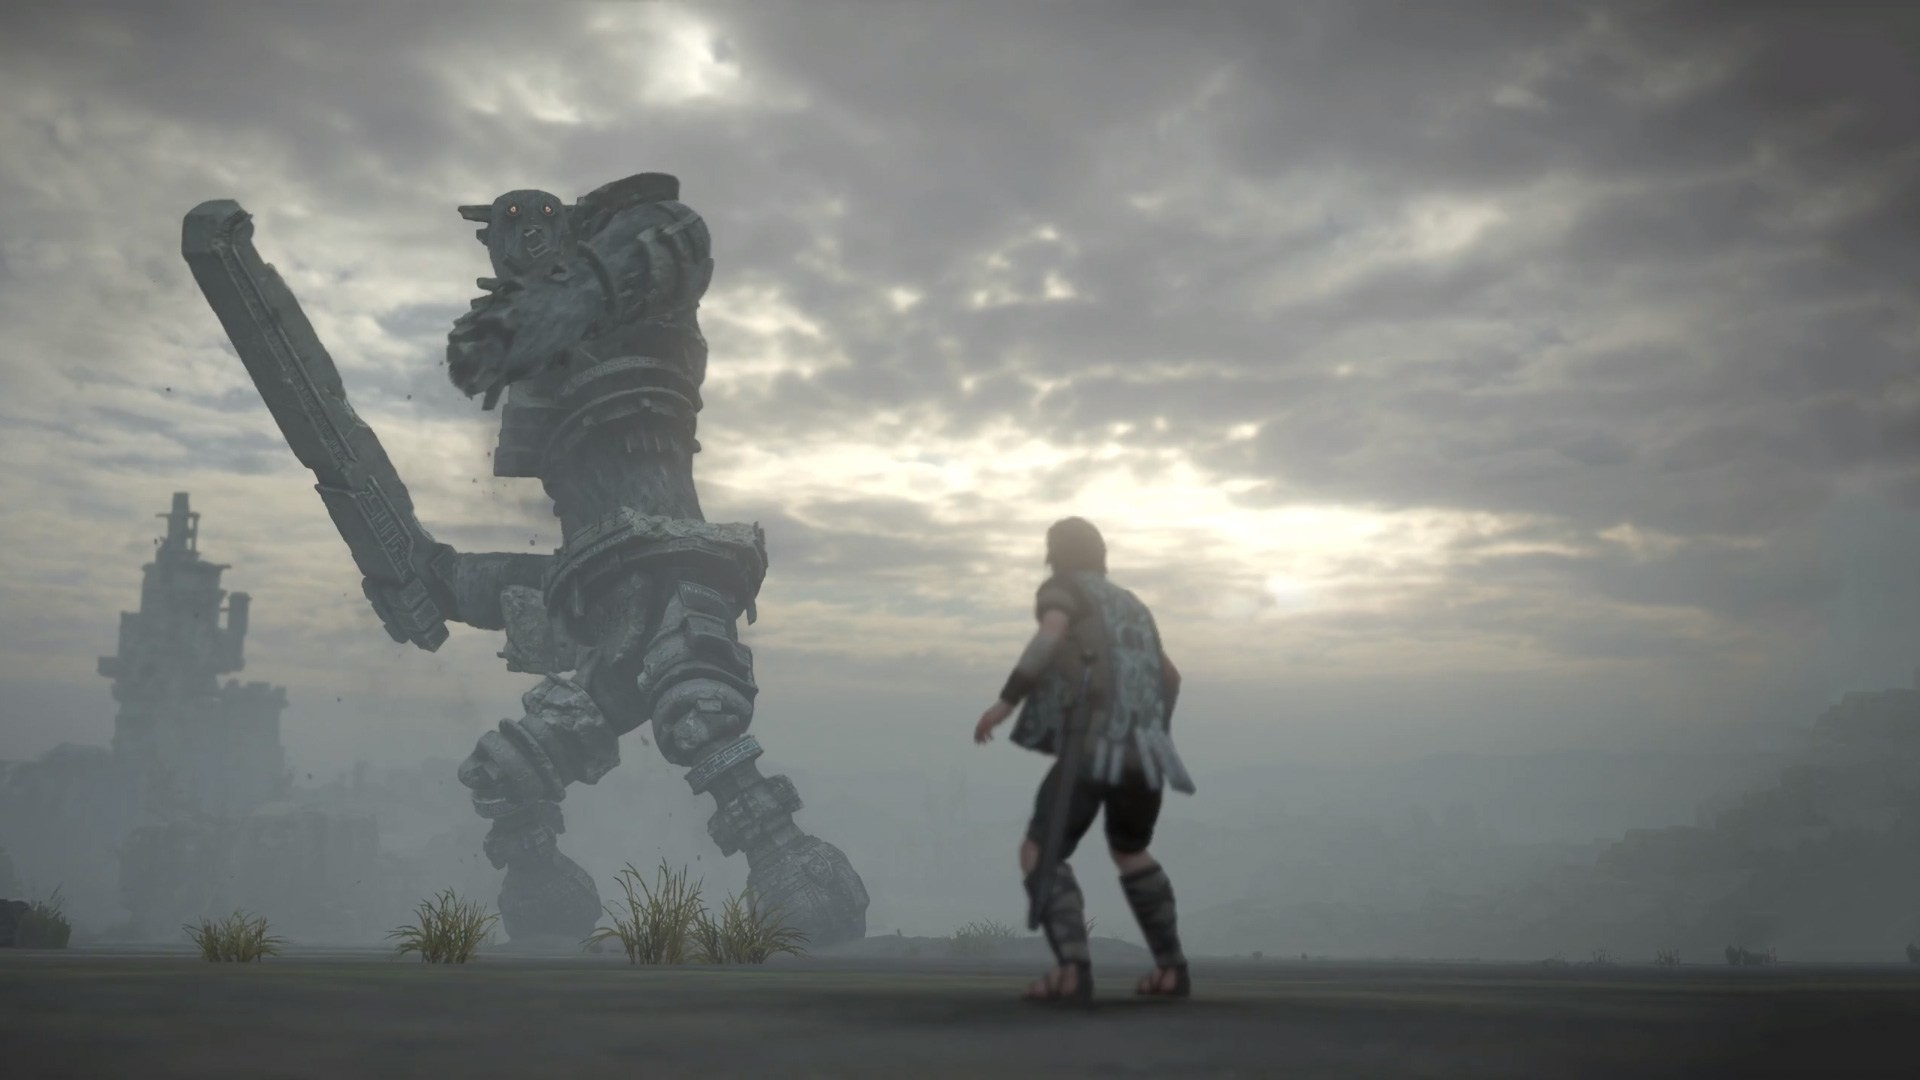 The classic Shadow of the Colossus is getting a remake on PS4. If you've  yet to play this cult classic game, make sure you pick it up when it  releases in …